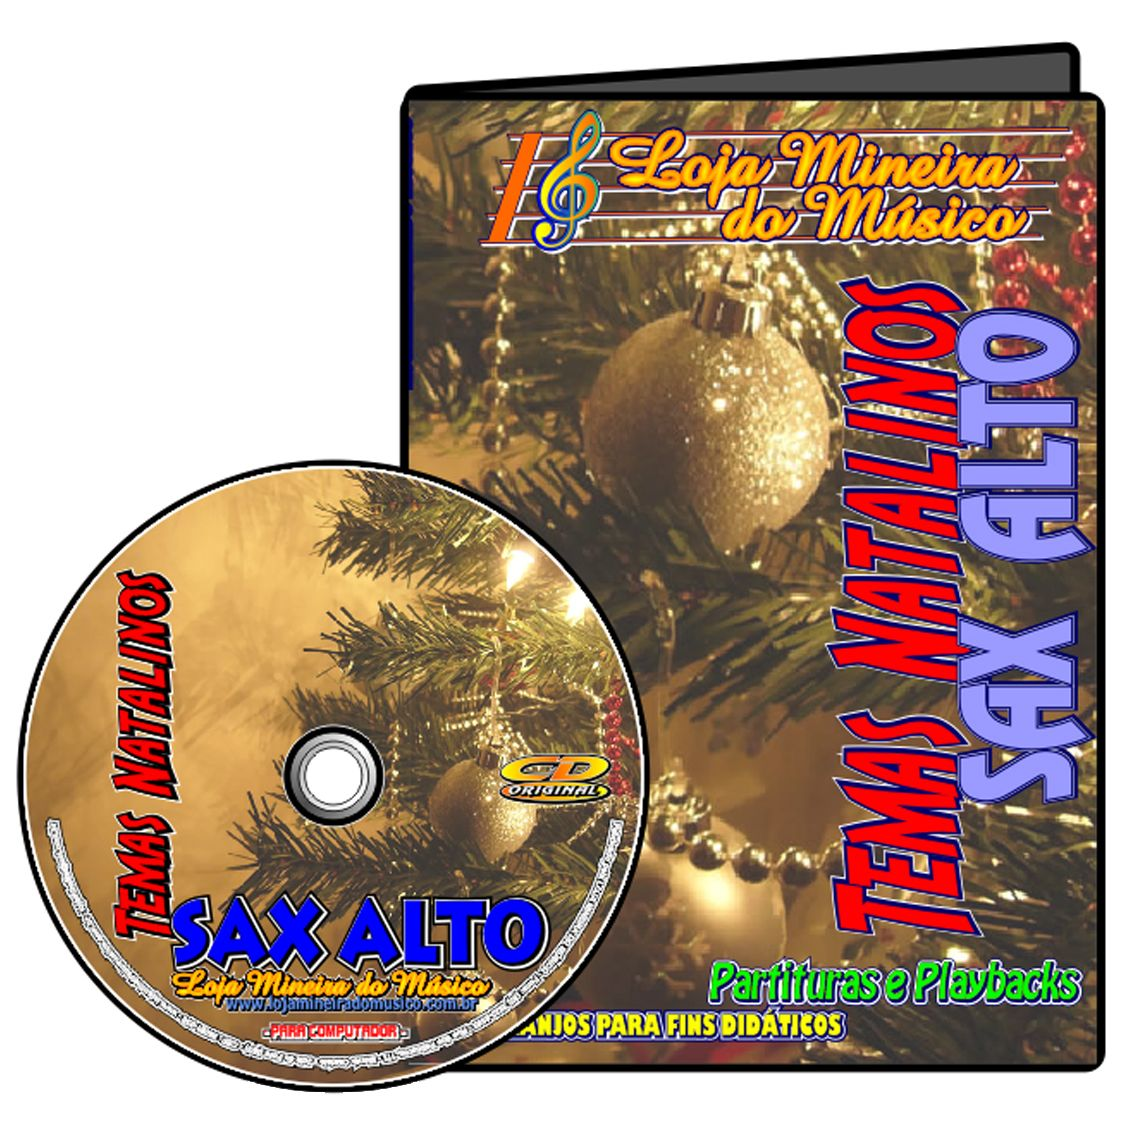 Sax Alto Partituras de Natal com Midi e MP3 Playbacks Natalinos